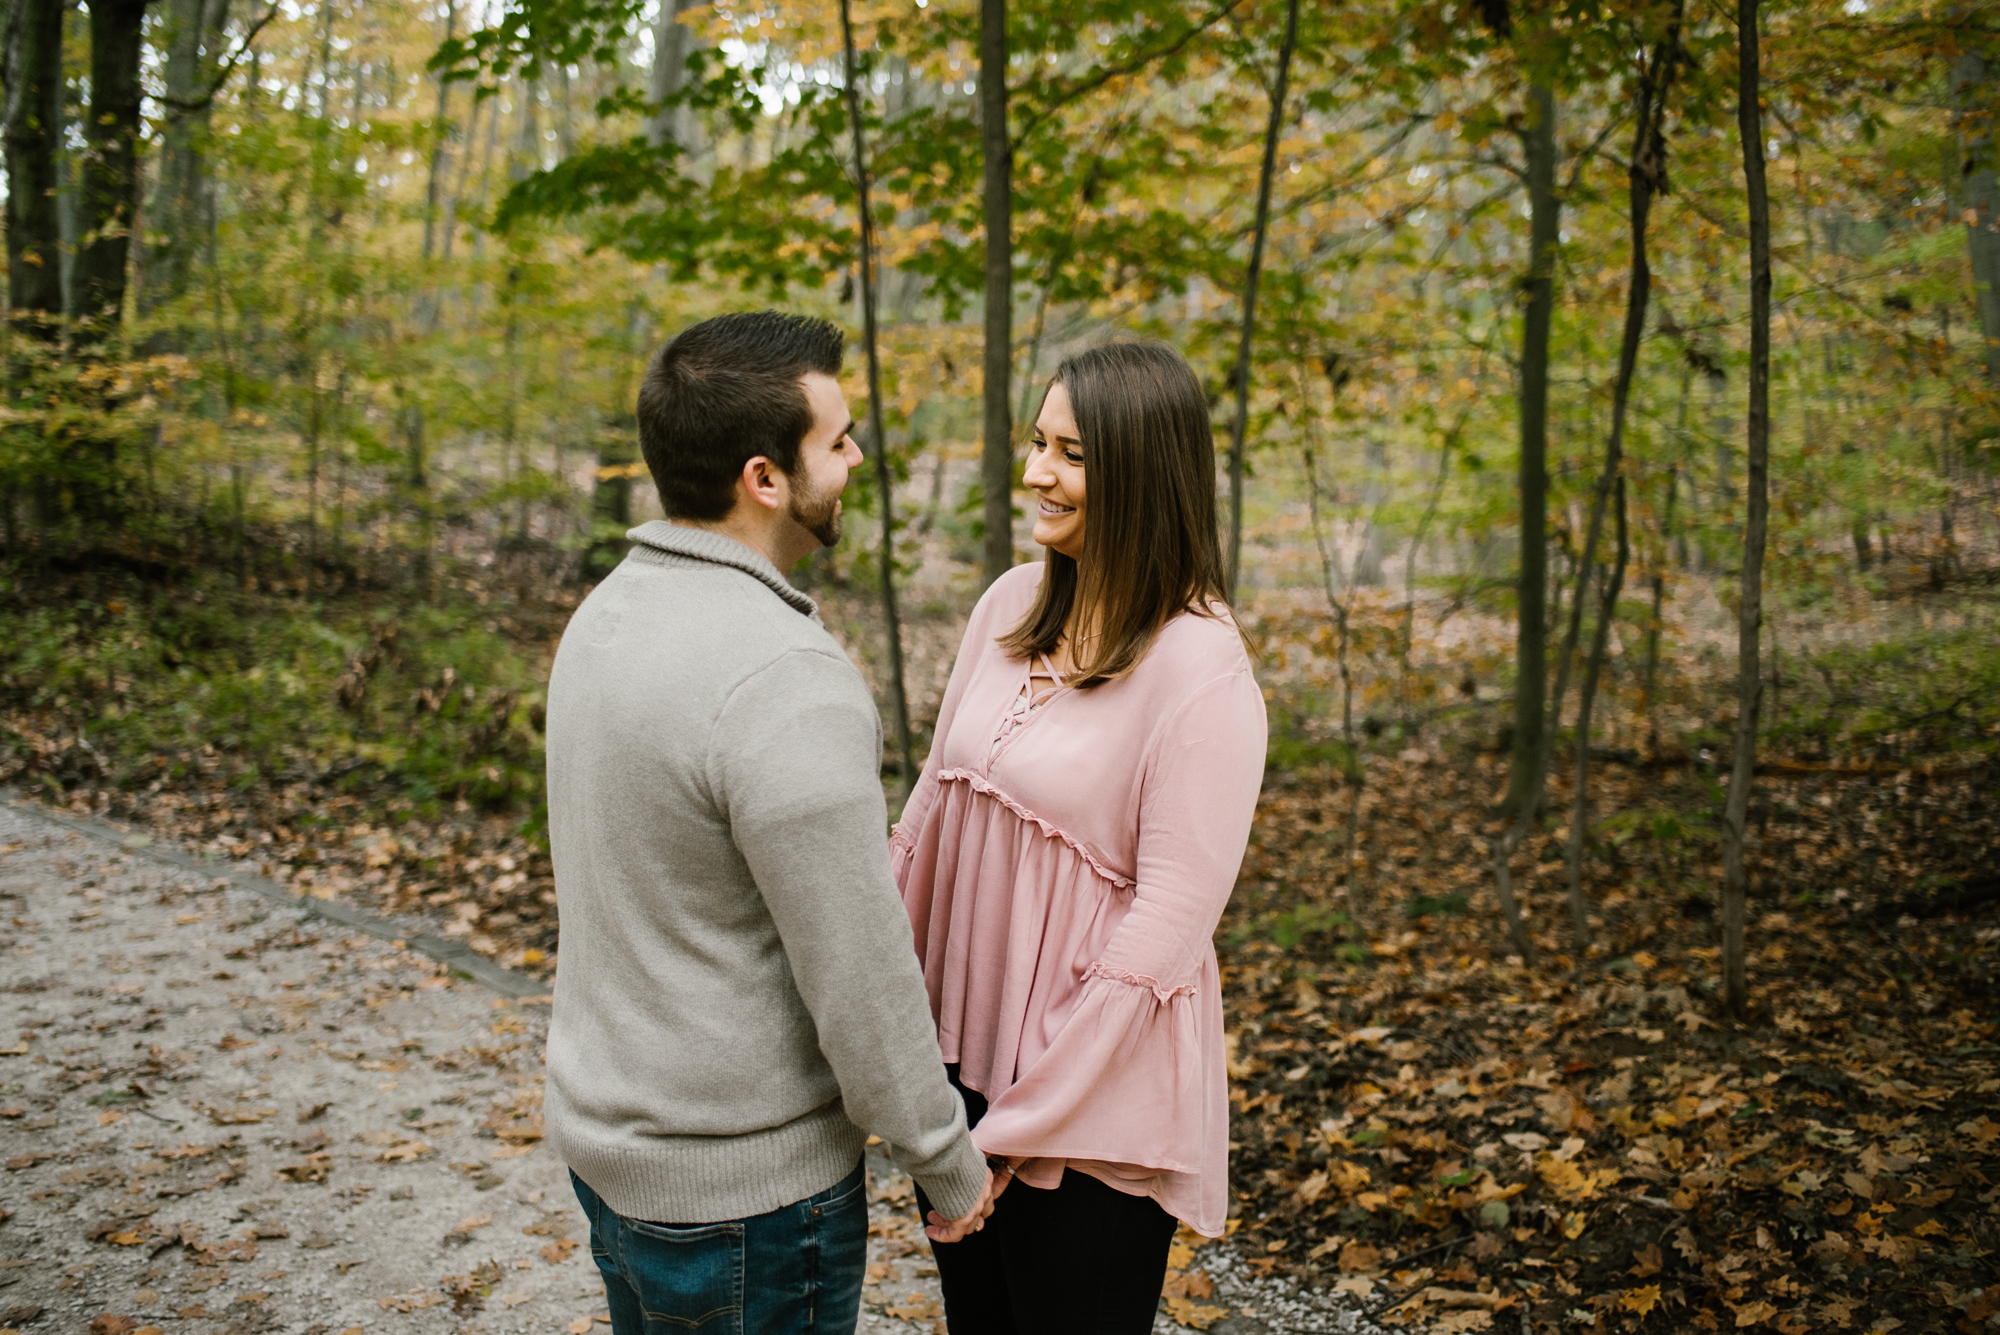 grand-haven-michigan-engagement-photographer-sydney-marie (51).jpg